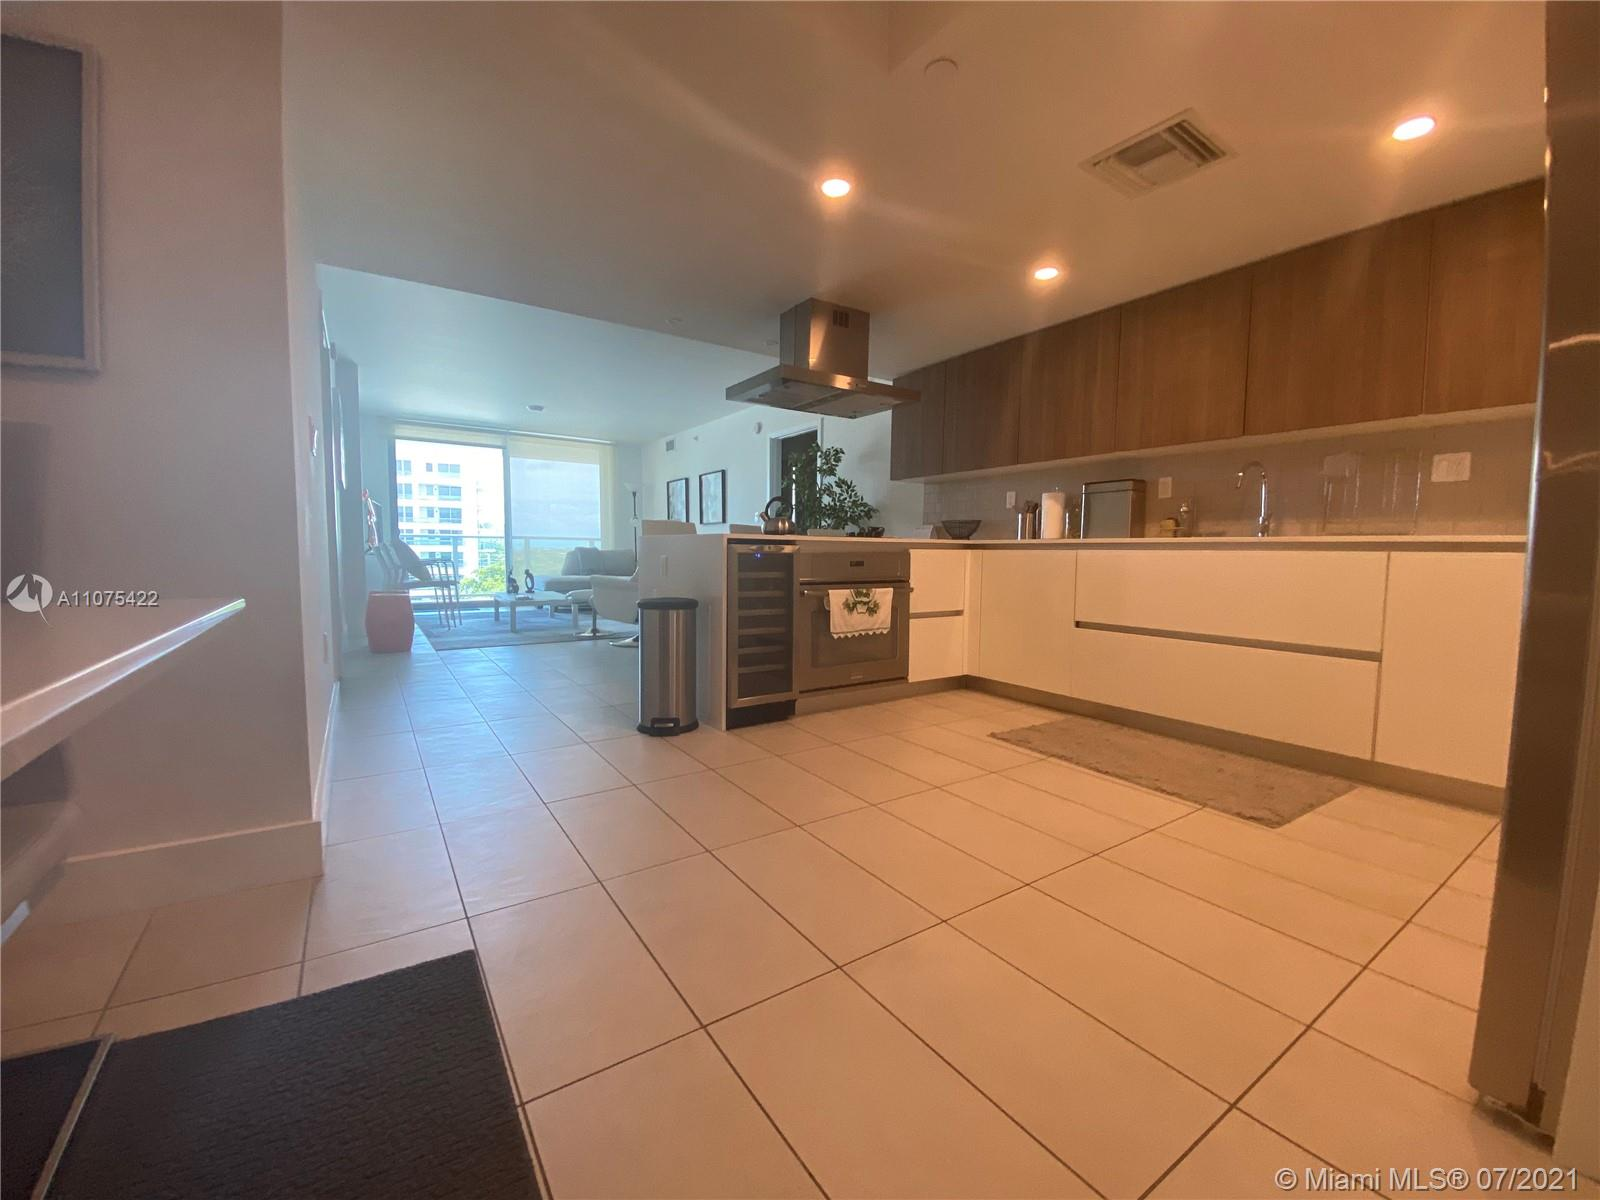 Resort style, boutique building with 2 Bedroom + 2 Bathroom plus a Den, located in Bay Harbor Island. New construction, delivered on 2015. 2 parking space. Close to Bal Harbor shoppes, south beach and Miami Airport. Very attractive place to leave and work.